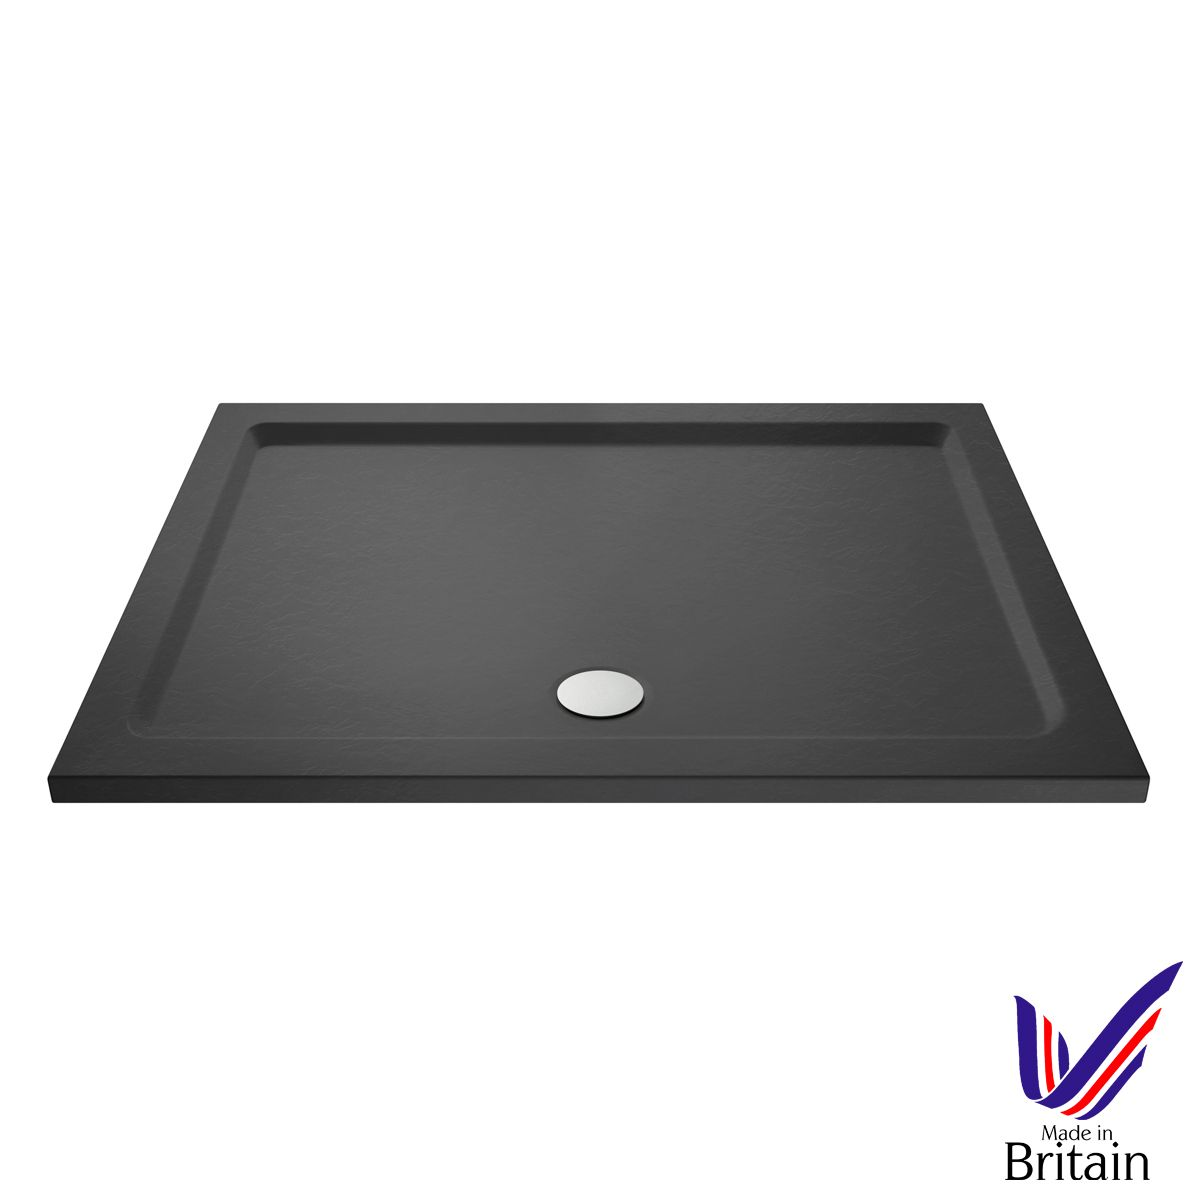 1500 x 760 Shower Tray Slate Grey Rectangular Low Profile by Pearlstone